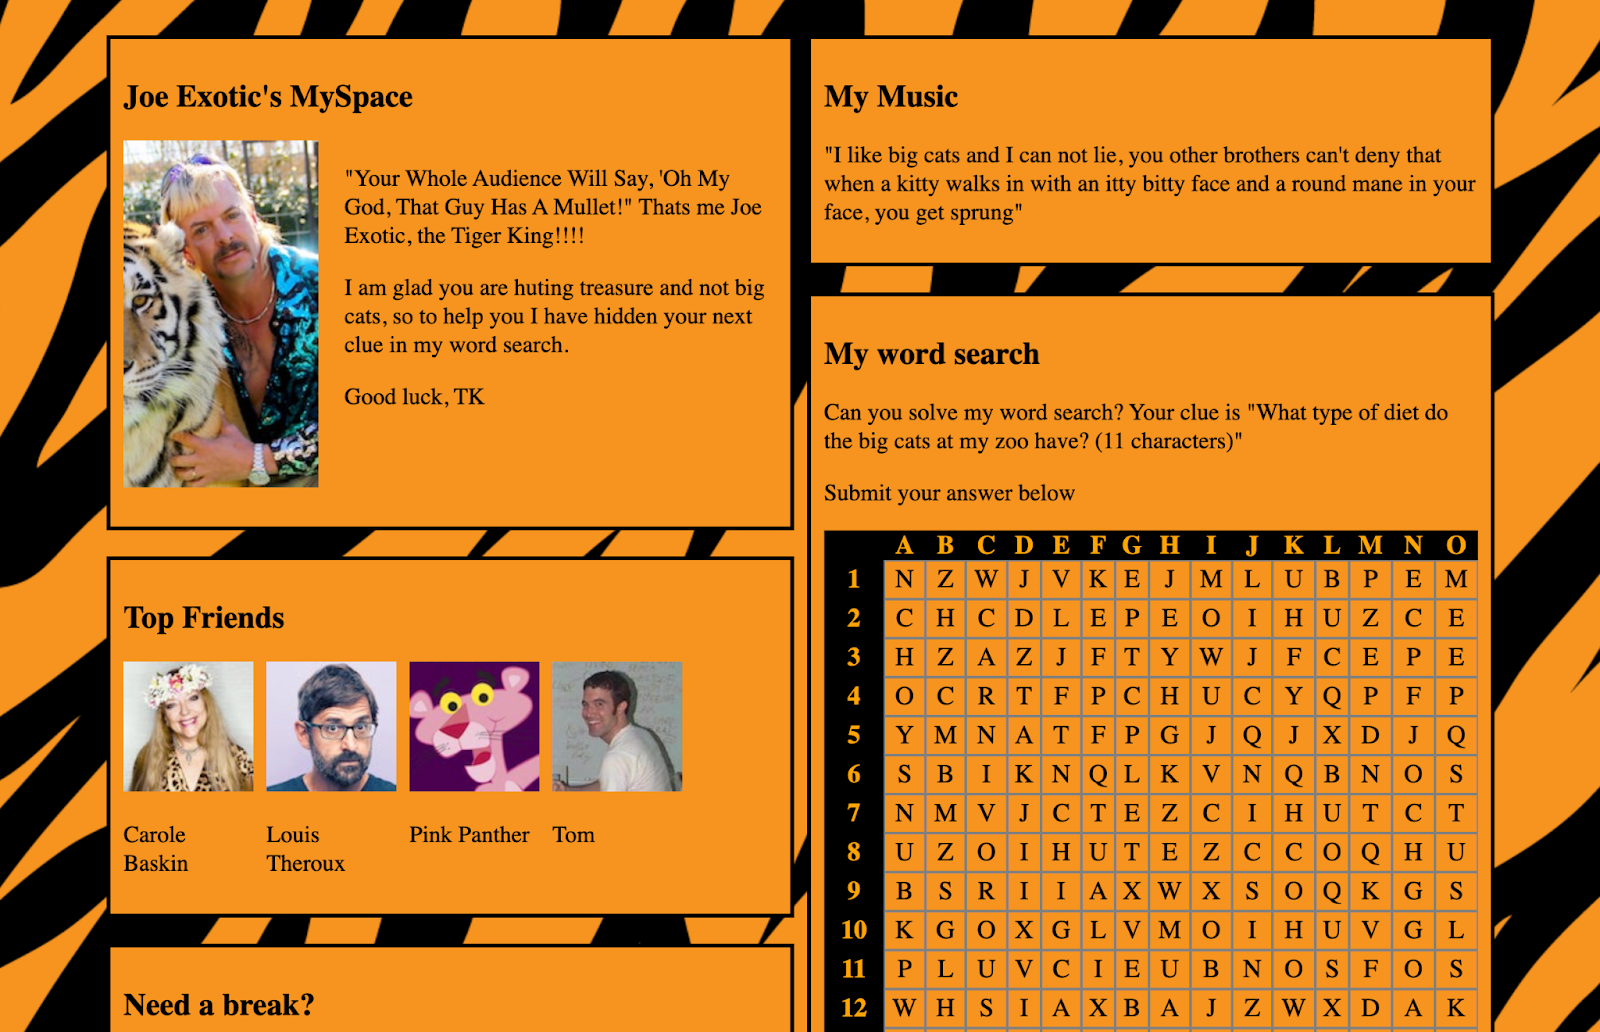 A fake MySpace page for Joe Exotic. The background is a tiger print pattern, and there's a word-search to one side